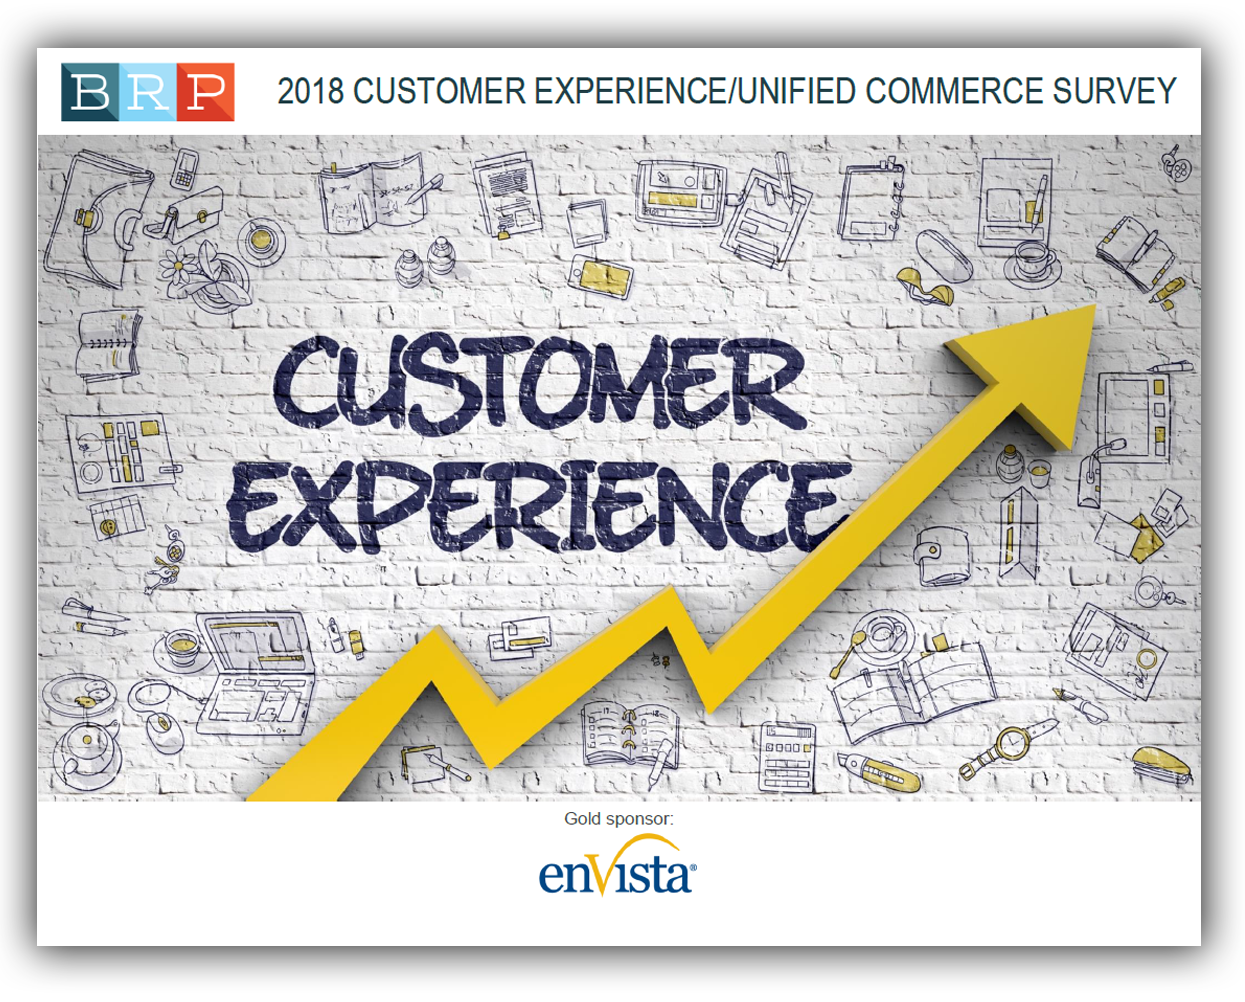 image_2018-customer-experience-unified-commerce-survey.png